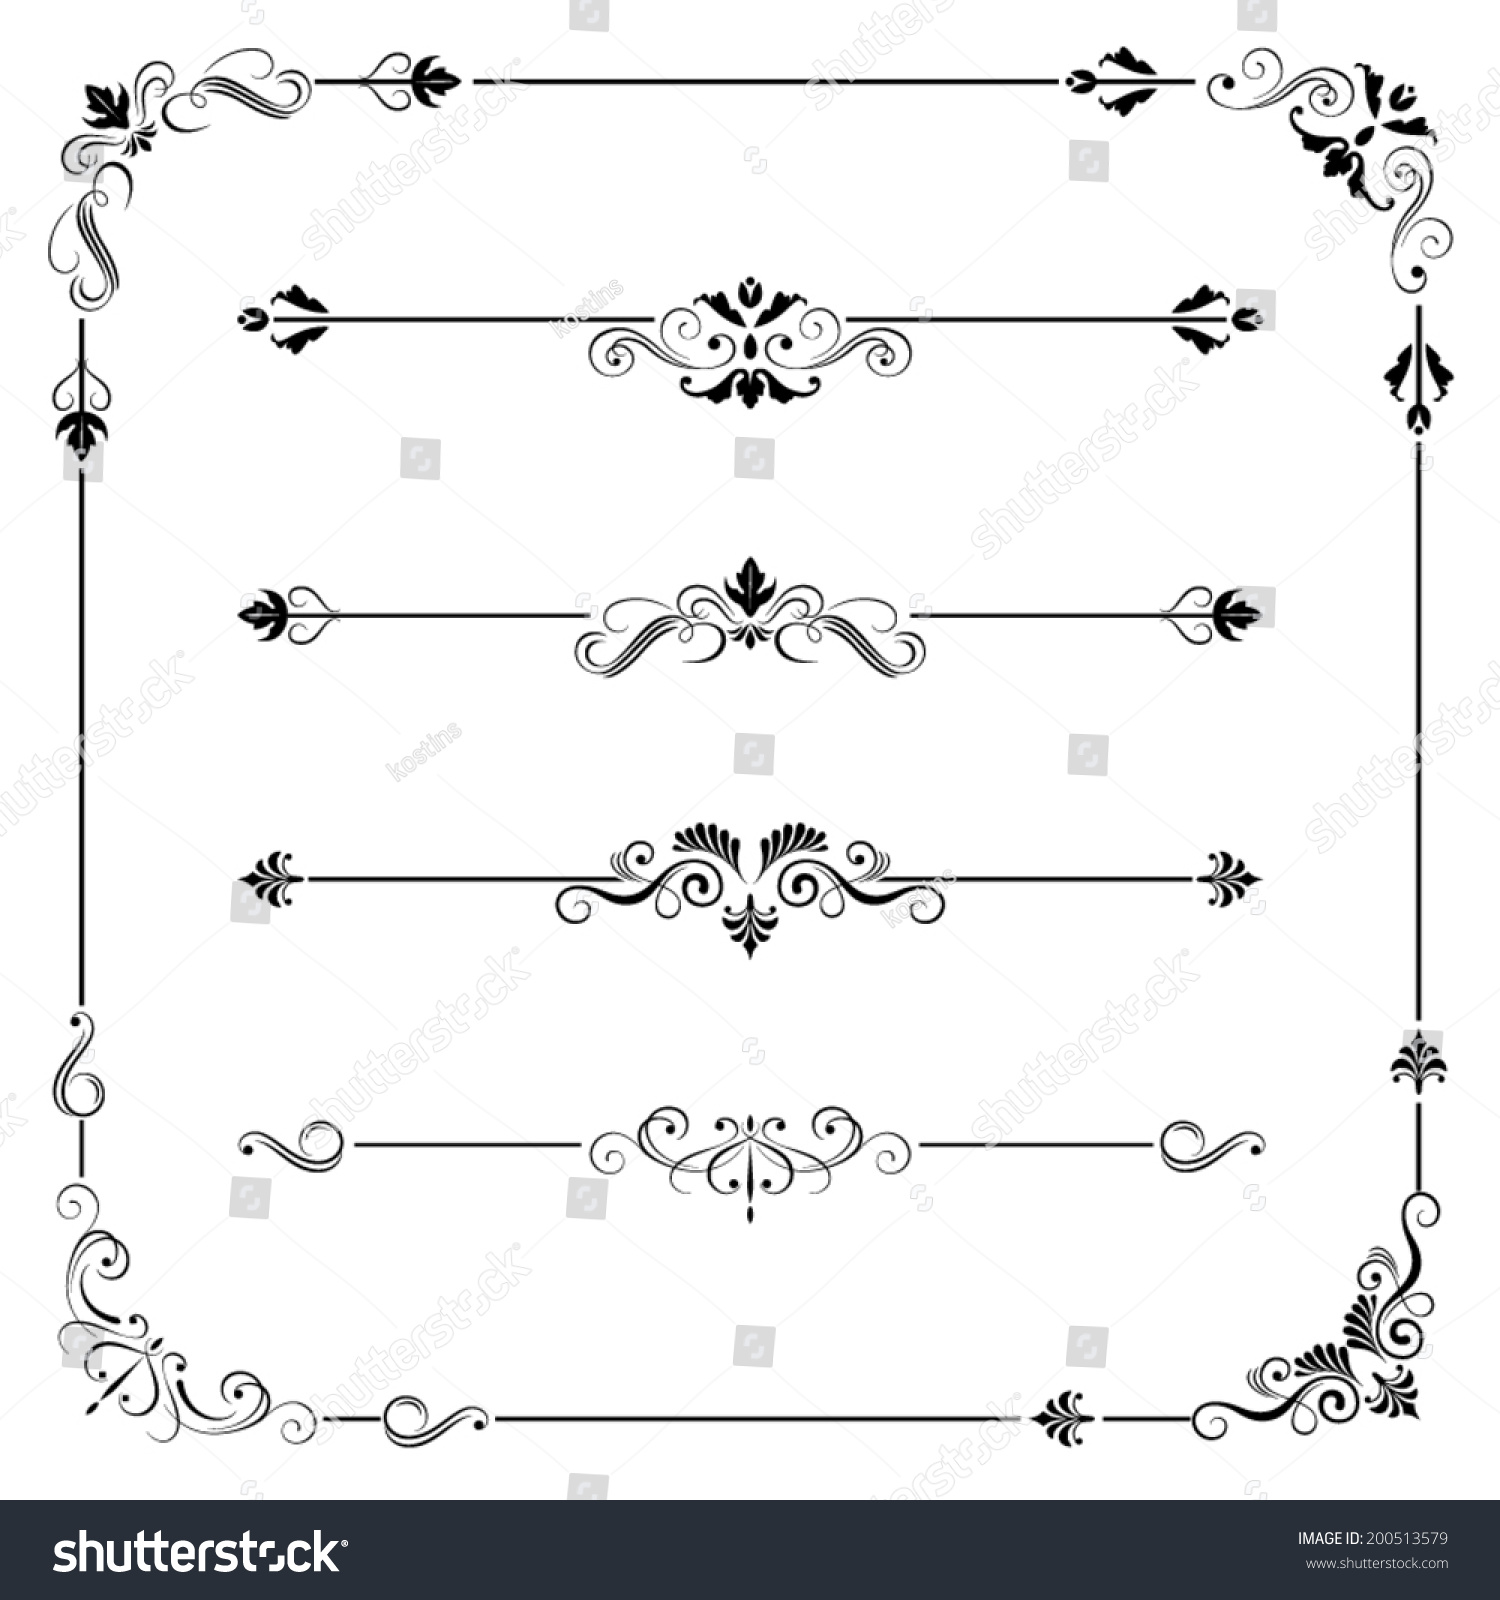 Set Of Vintage Vector Frame Border Divider Corner Retro Elements Collection Ornate Page Decor For Calligraphy Design Stock Photo